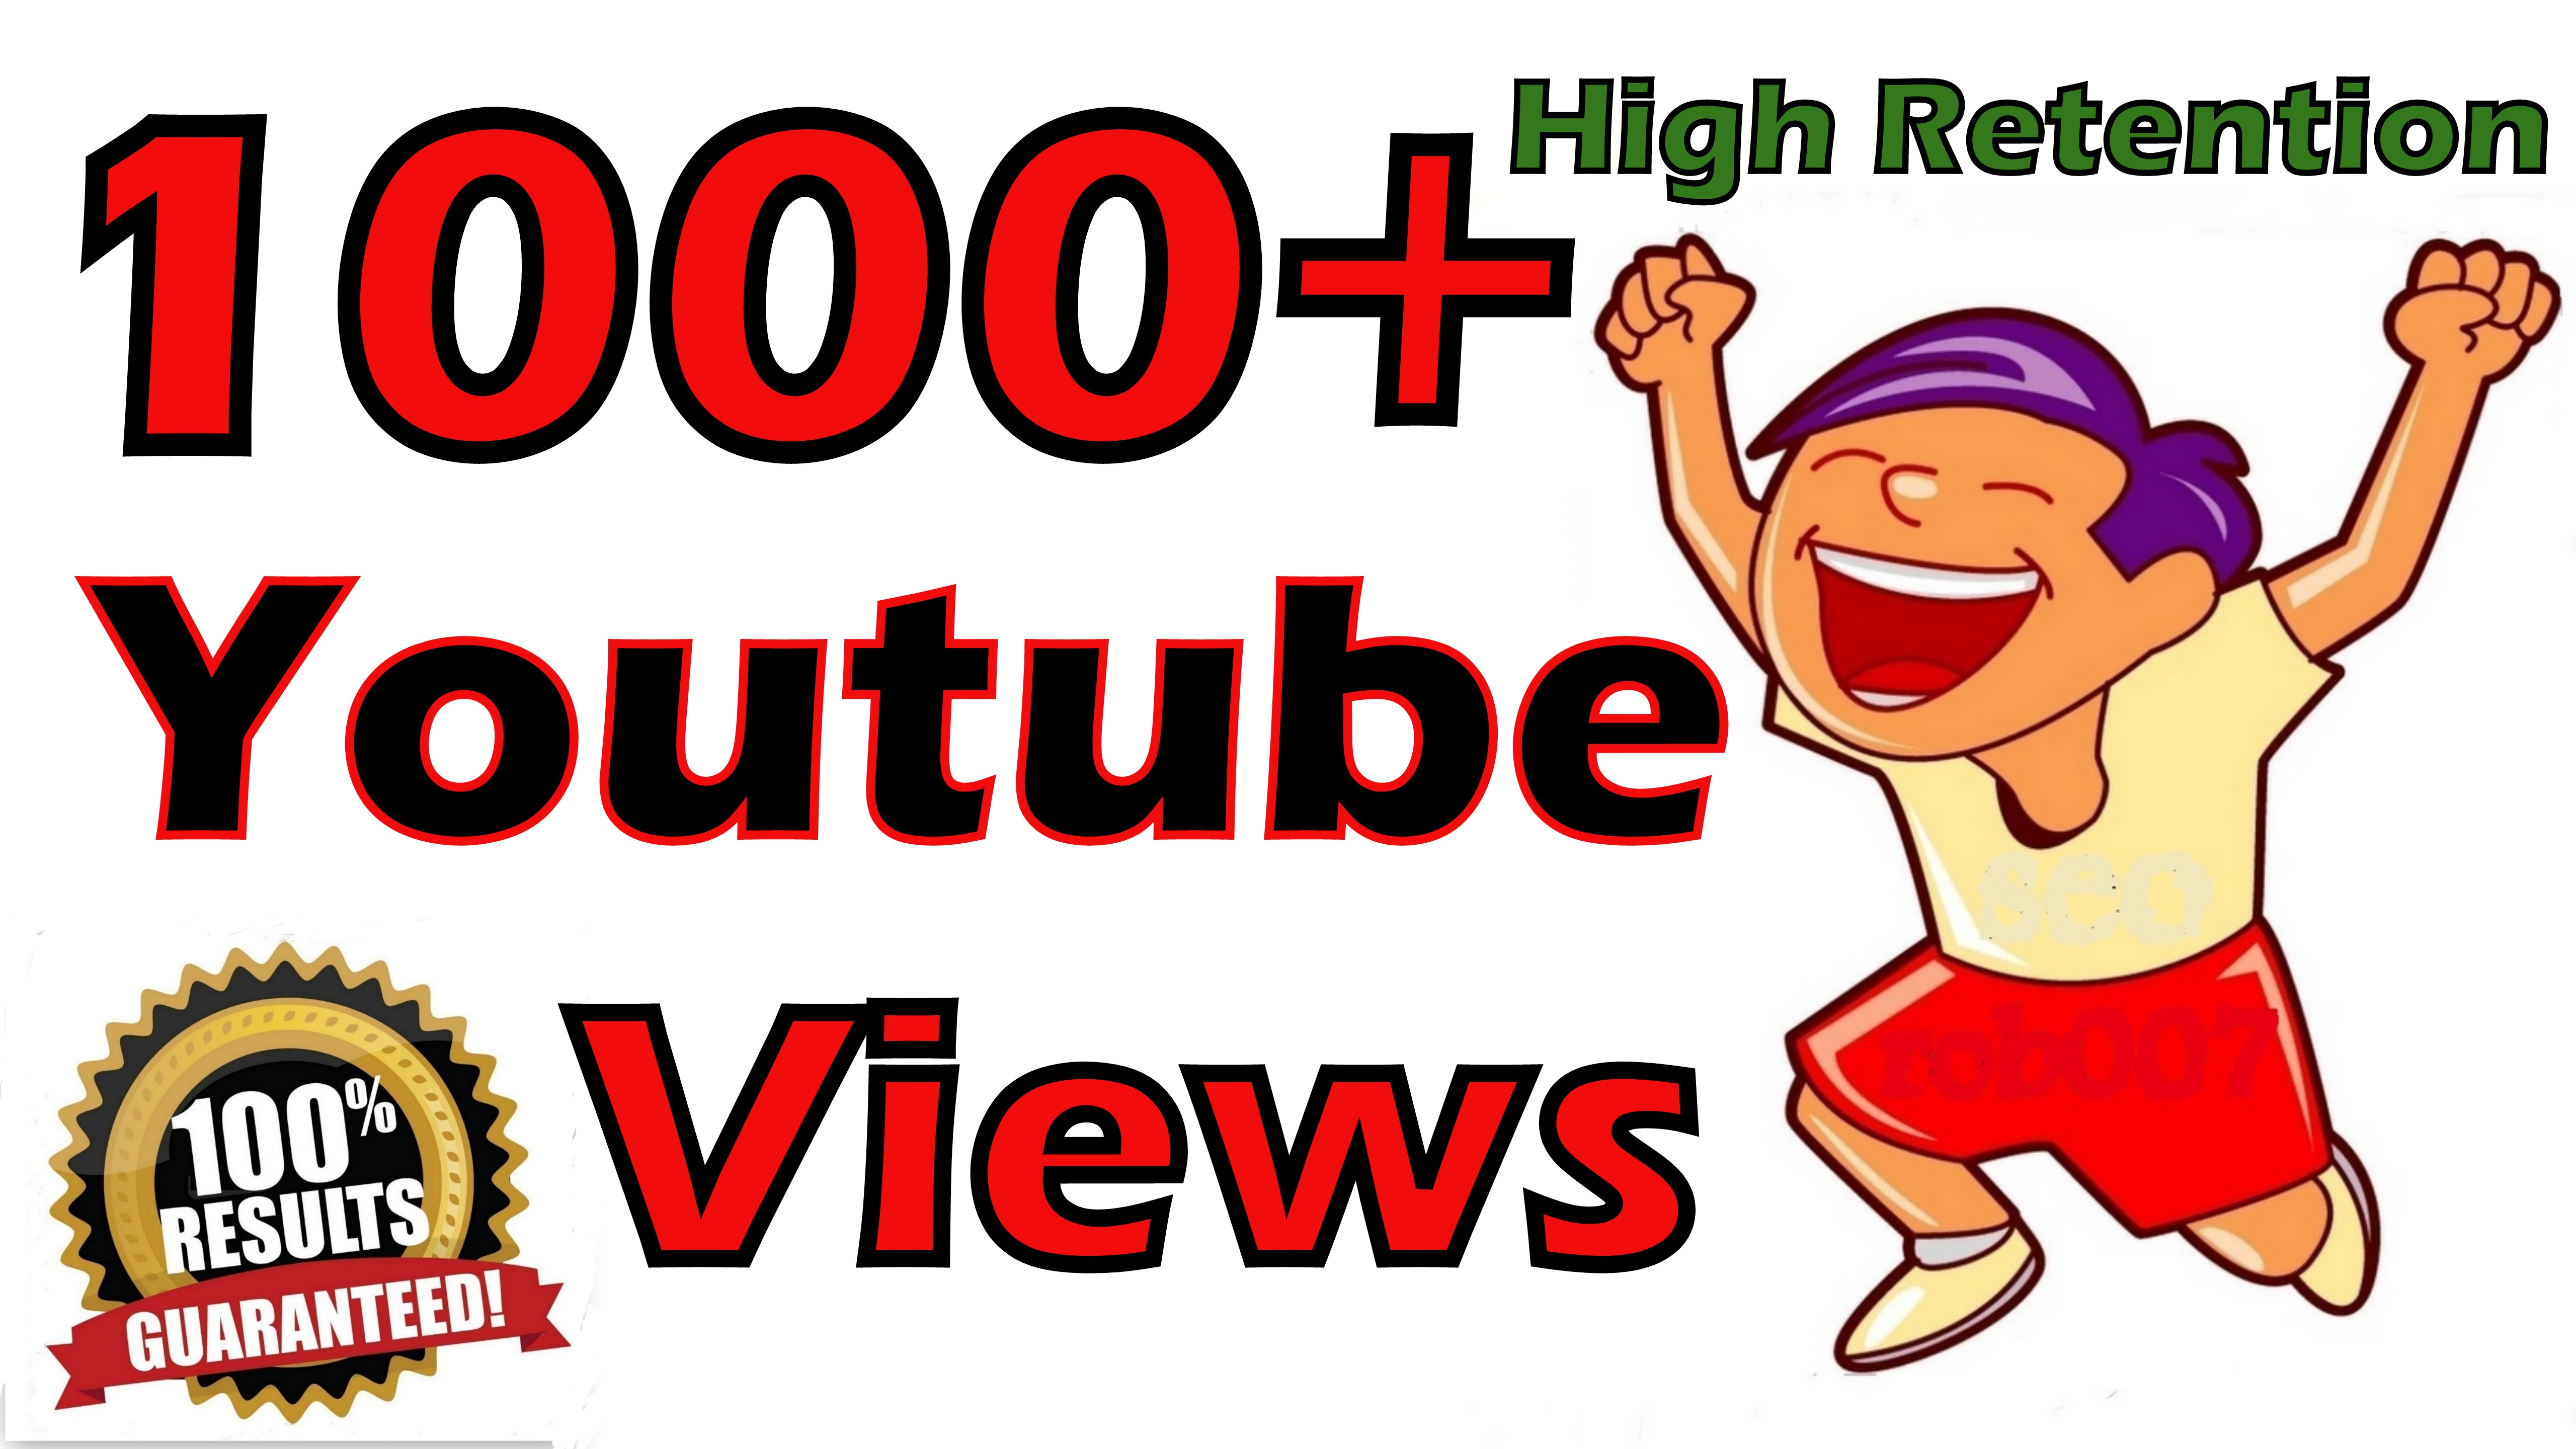 Safe 1000+  Video Views Lifetime Guarantee Super Fast Promotion in 2448 Hours